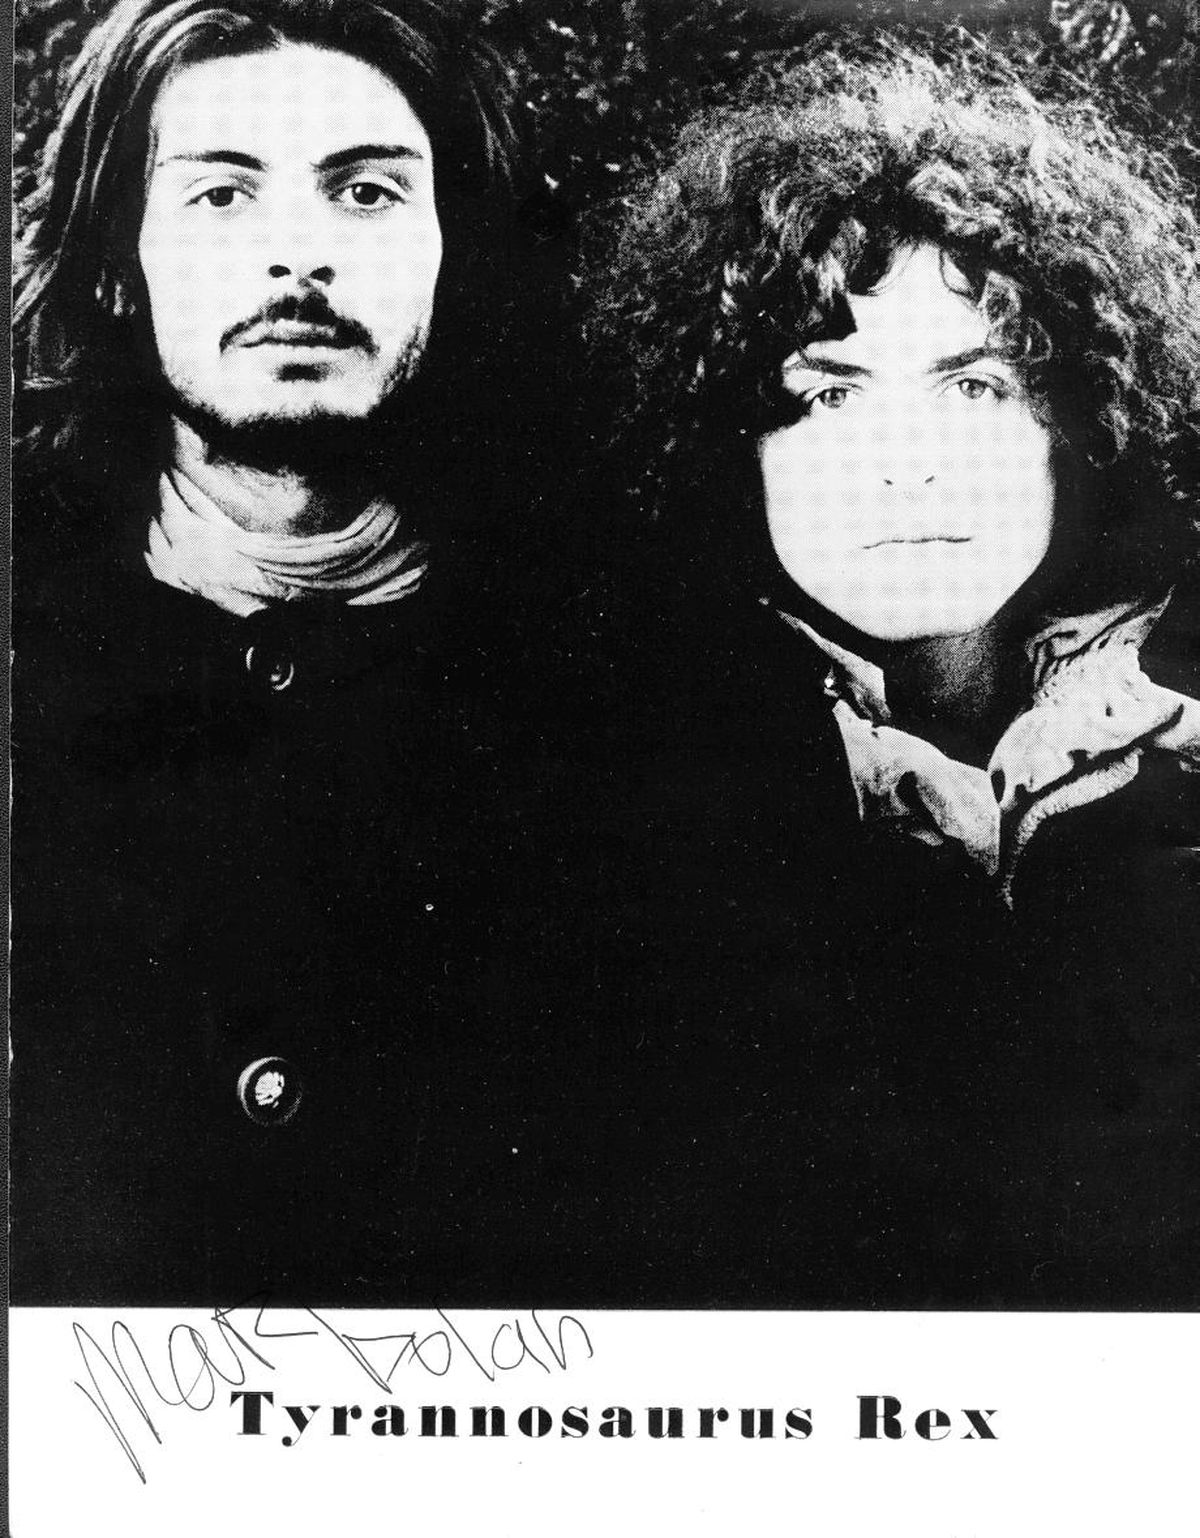 Took and Bolan on the cover of the programme for a concert at Dudley Castle in 1970